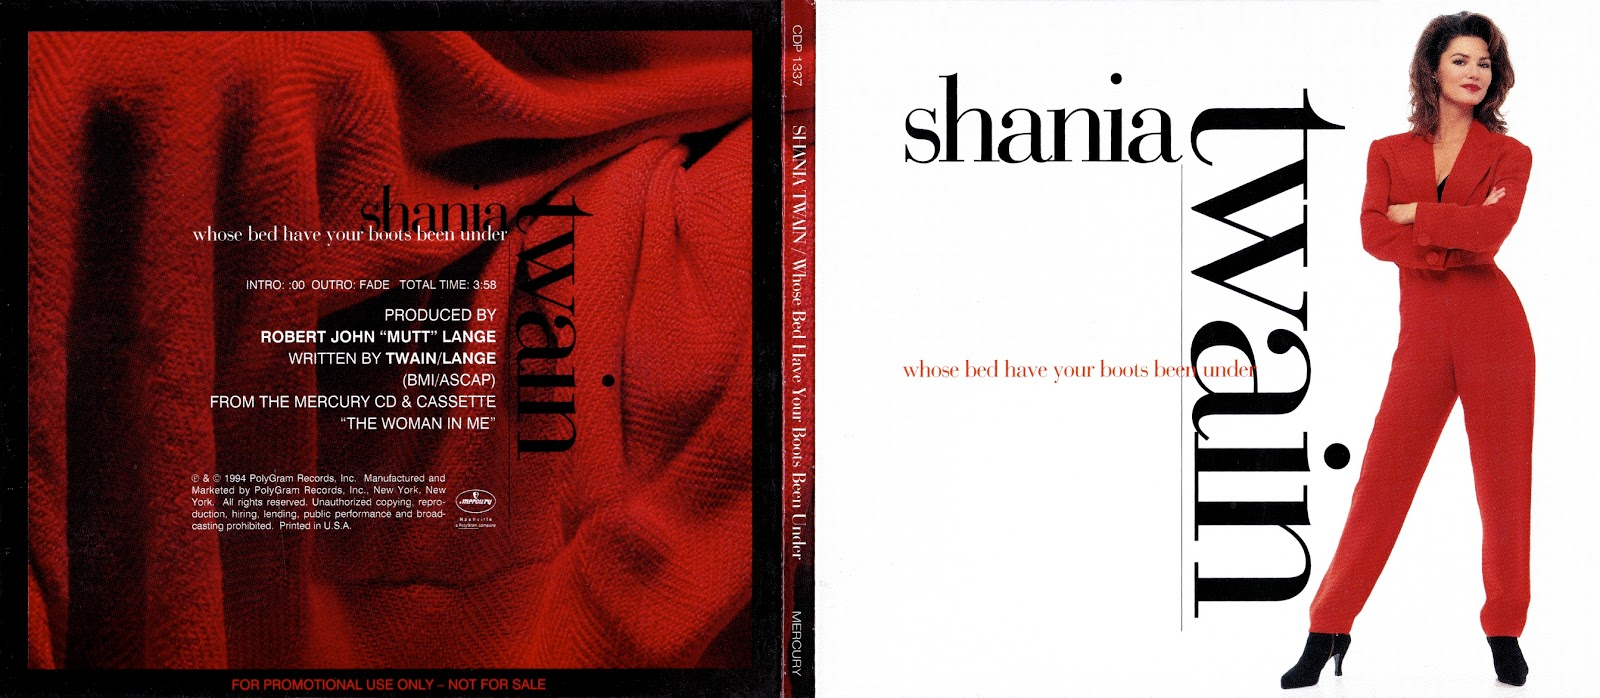 Shania Twain Discography Whose Bed Have Your Boots Been